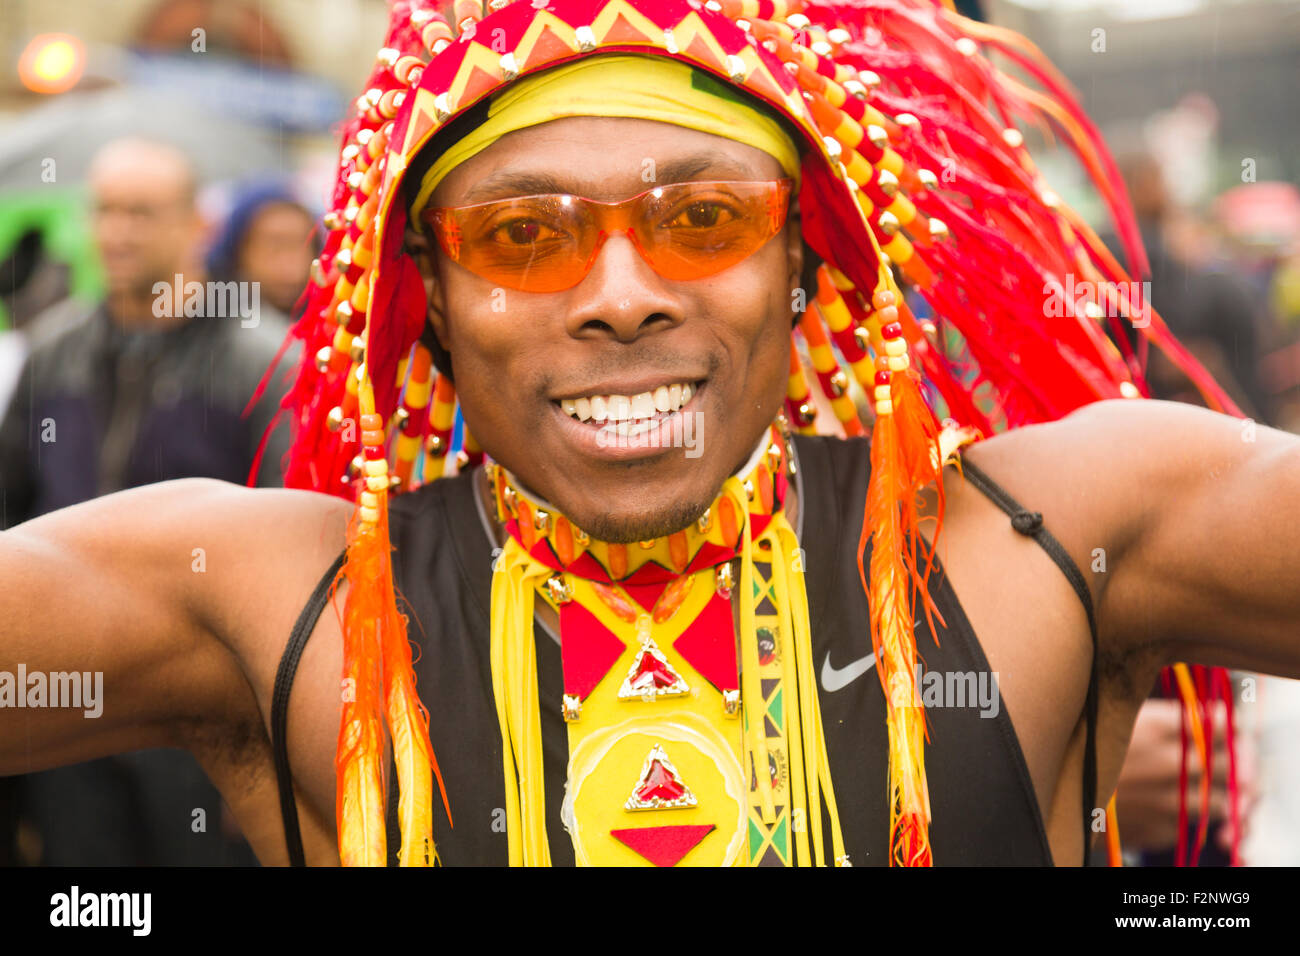 Notting Hill Carnival Outfits, London, Jamaica, Trinidad & Tobago, Fashion - Stock Image